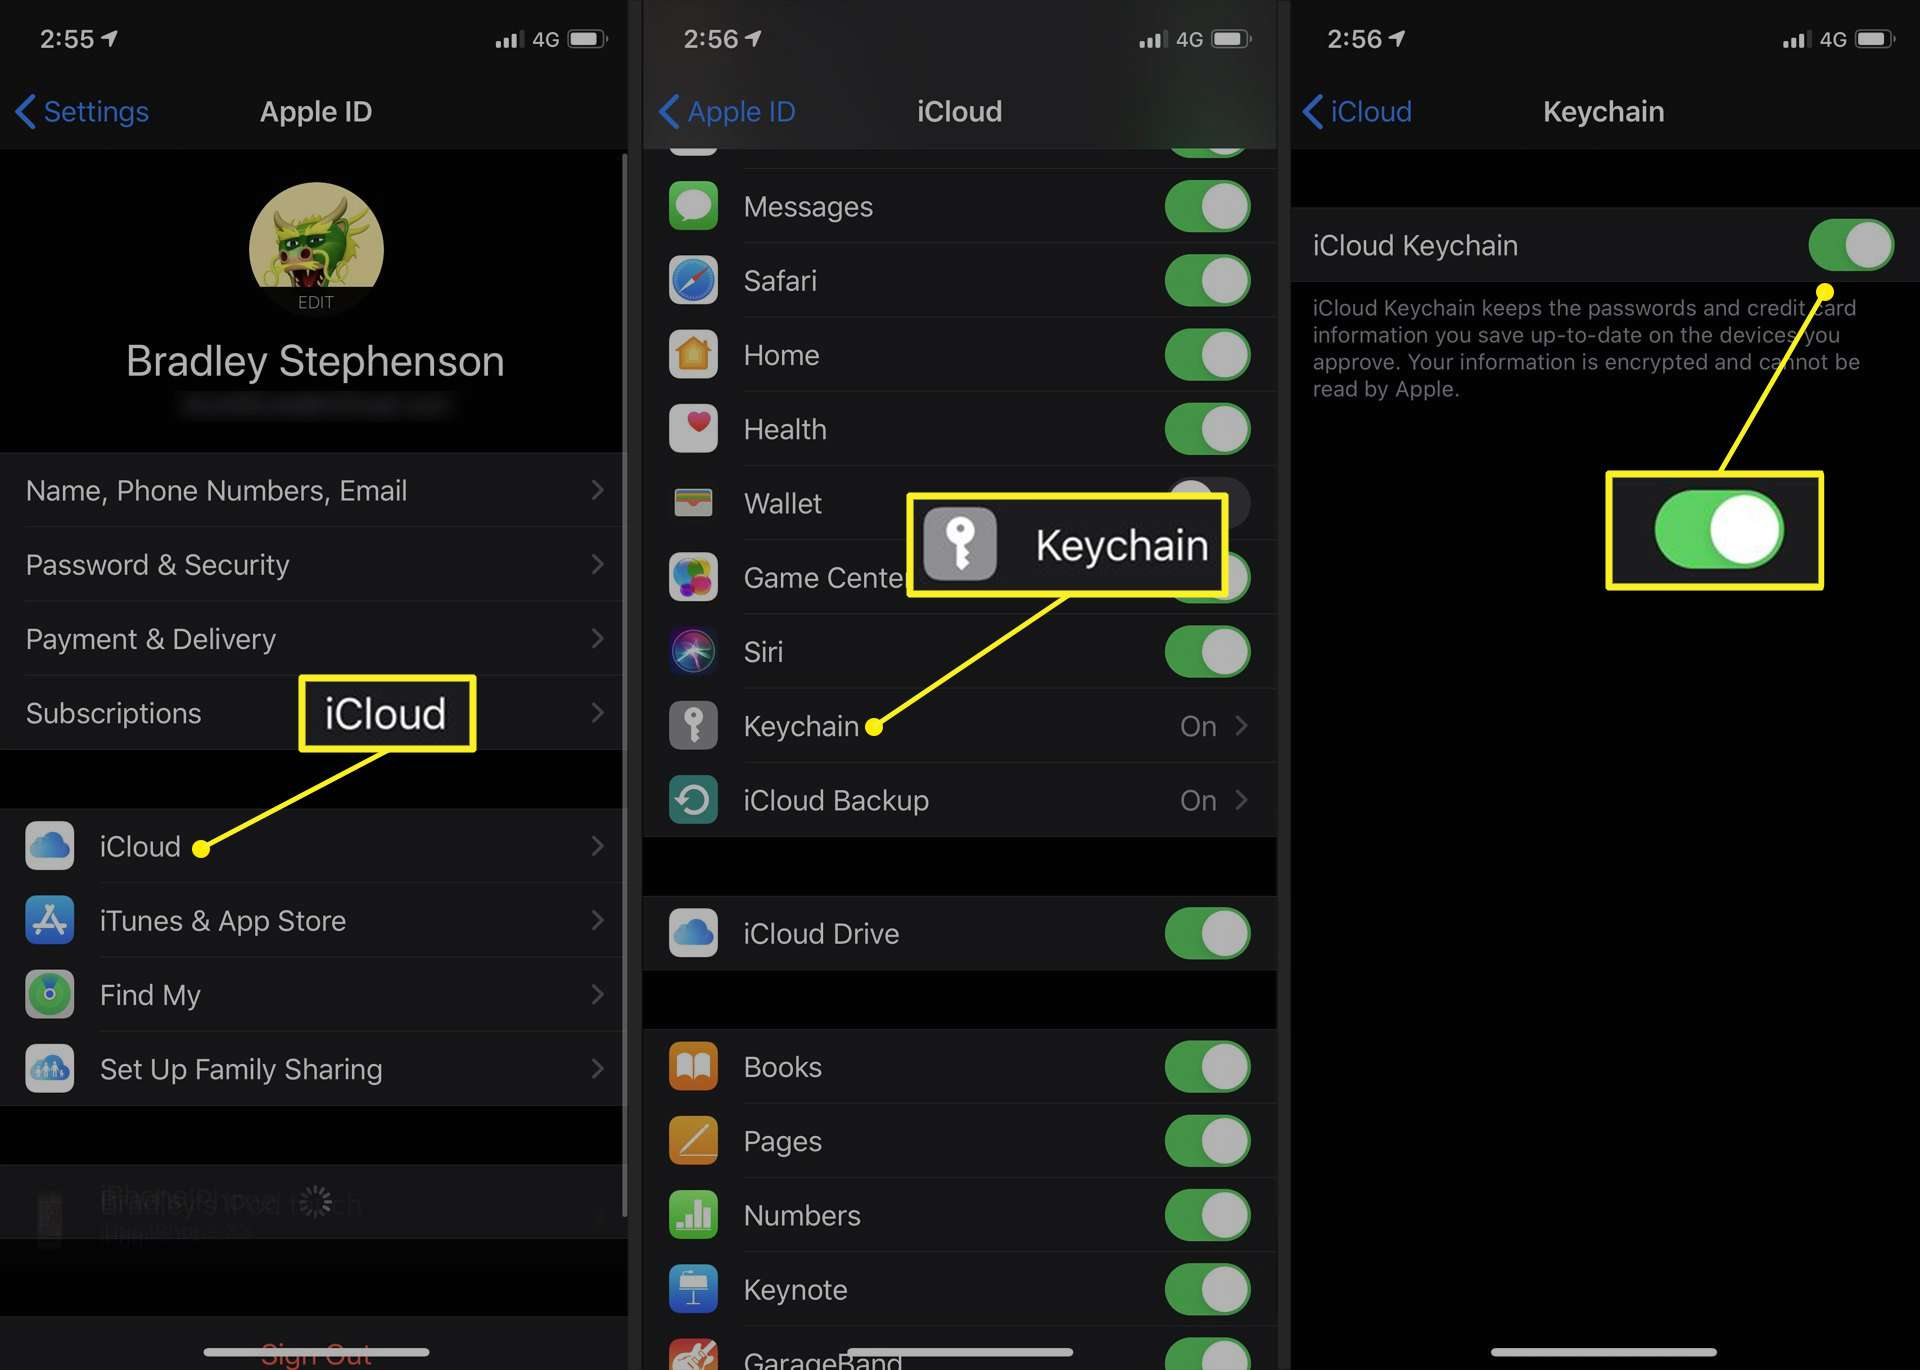 Path to activation slider for iCloud Keychain on iPhone in iOS